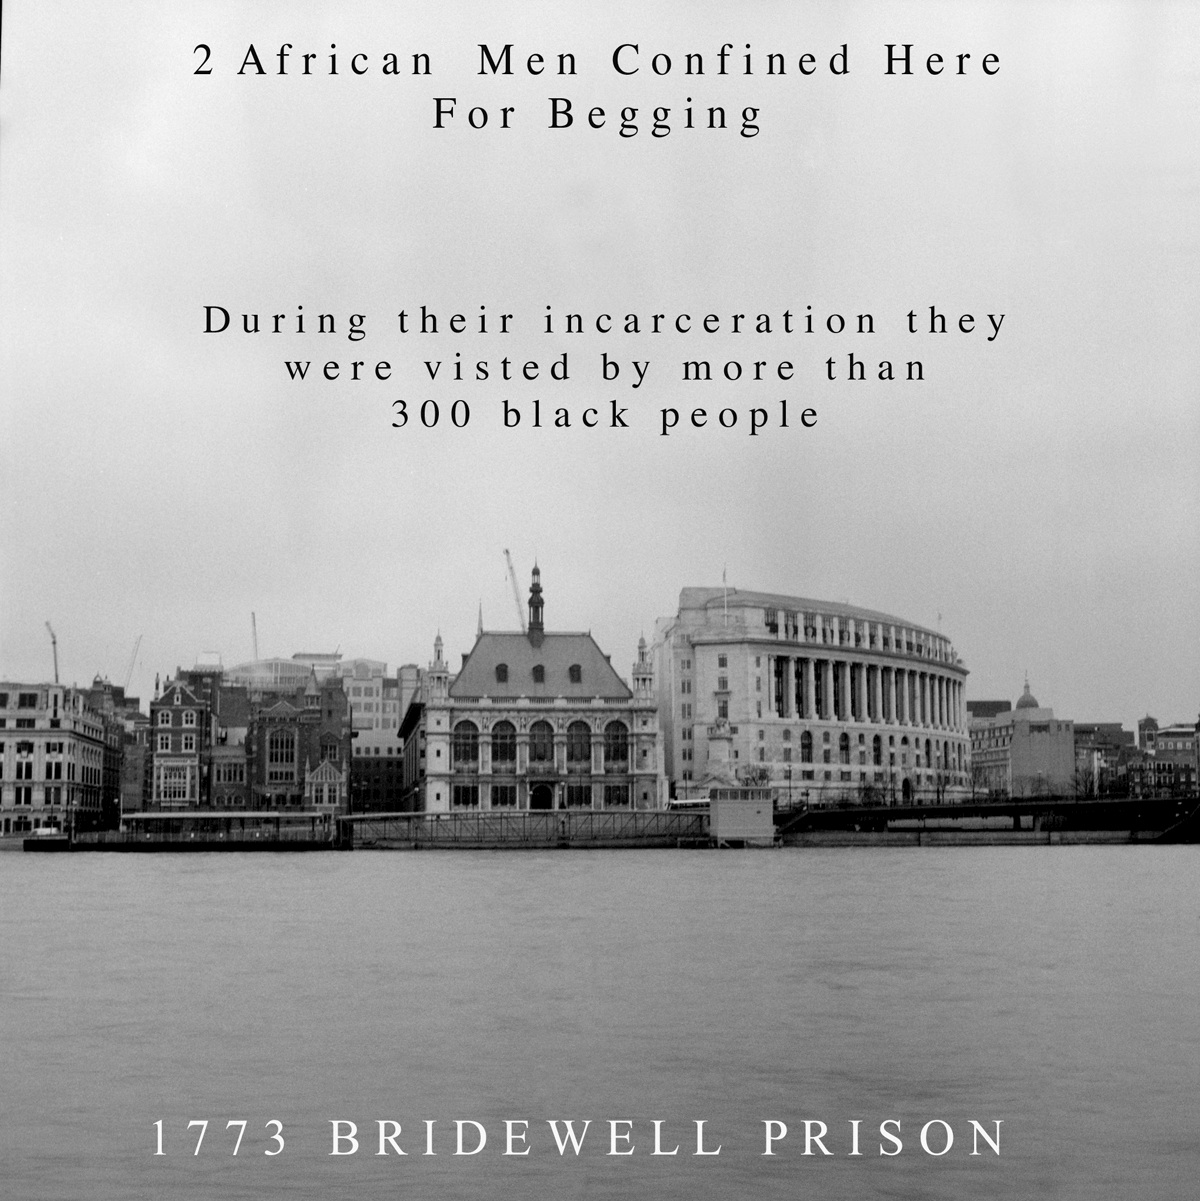 Bridewell Prison from Sites of Africa © Joy Gregory